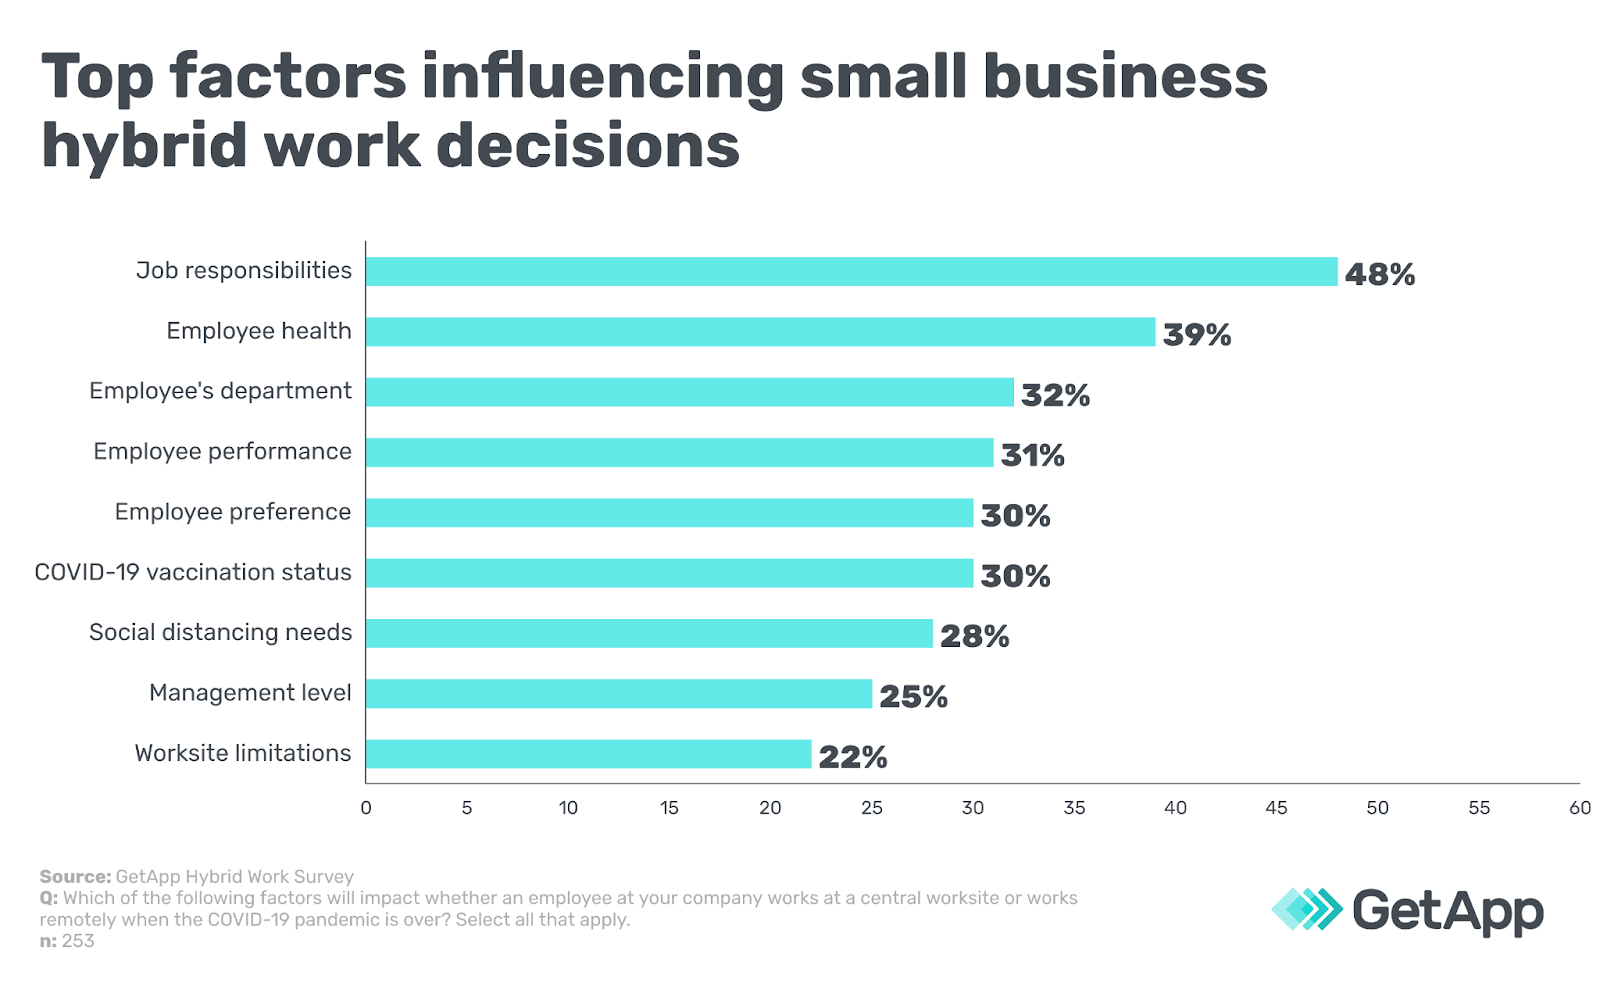 Top factors influencing small business hybrid work decisions